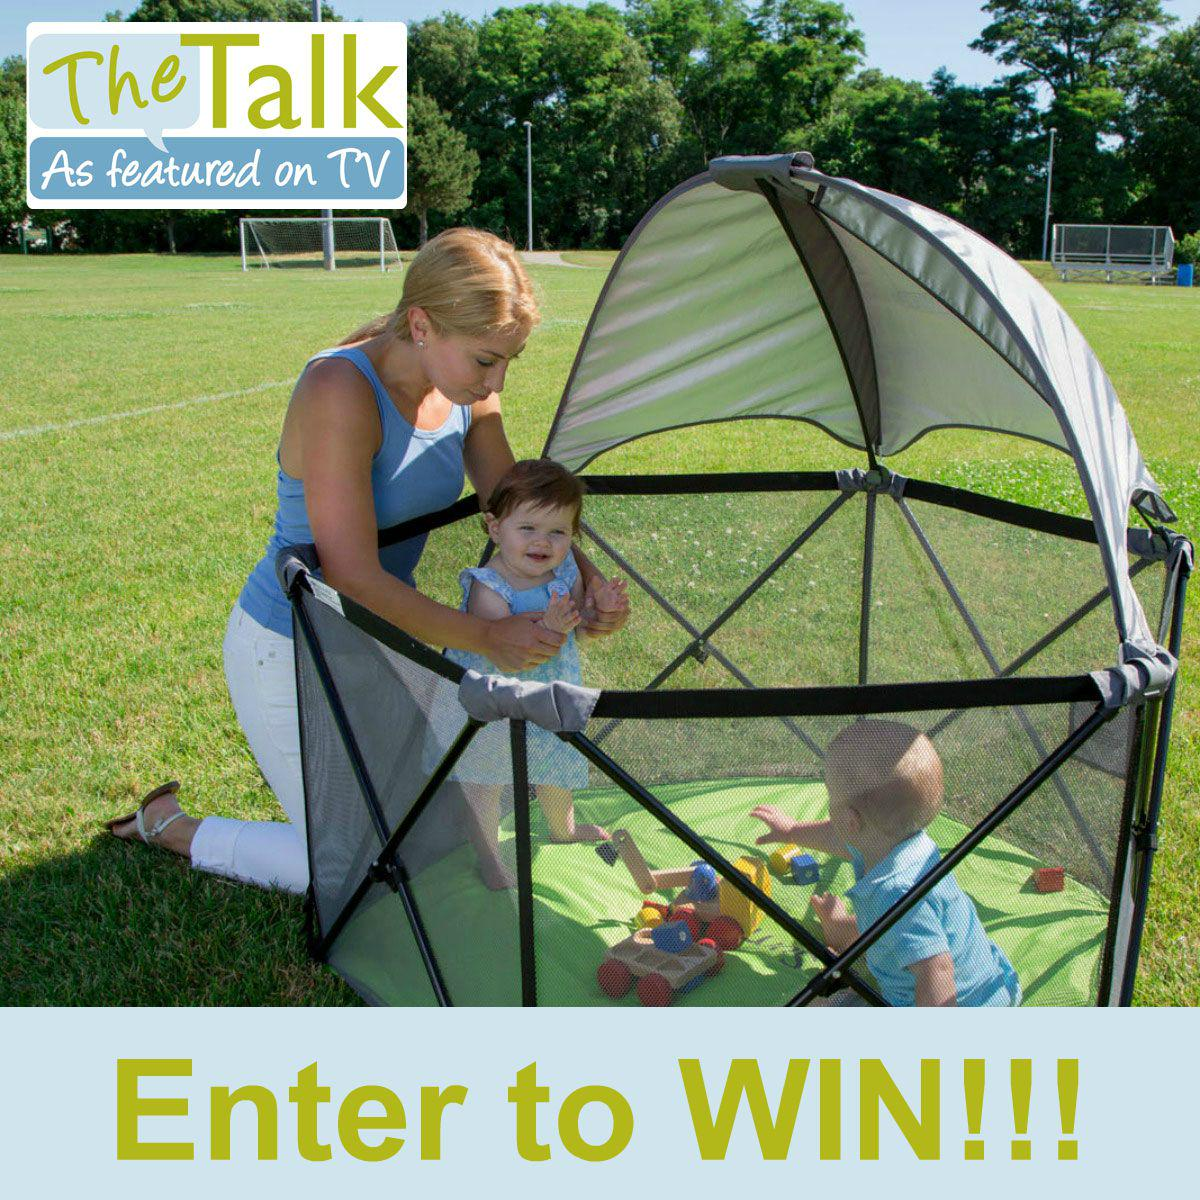 Enter to #WIN a Pop 'n Play Ultimate Playard that was featured on @TheTalk_CBS!: http://t.co/ZAb3bXSU5y #sweepstakes http://t.co/KqTmFtbMi6